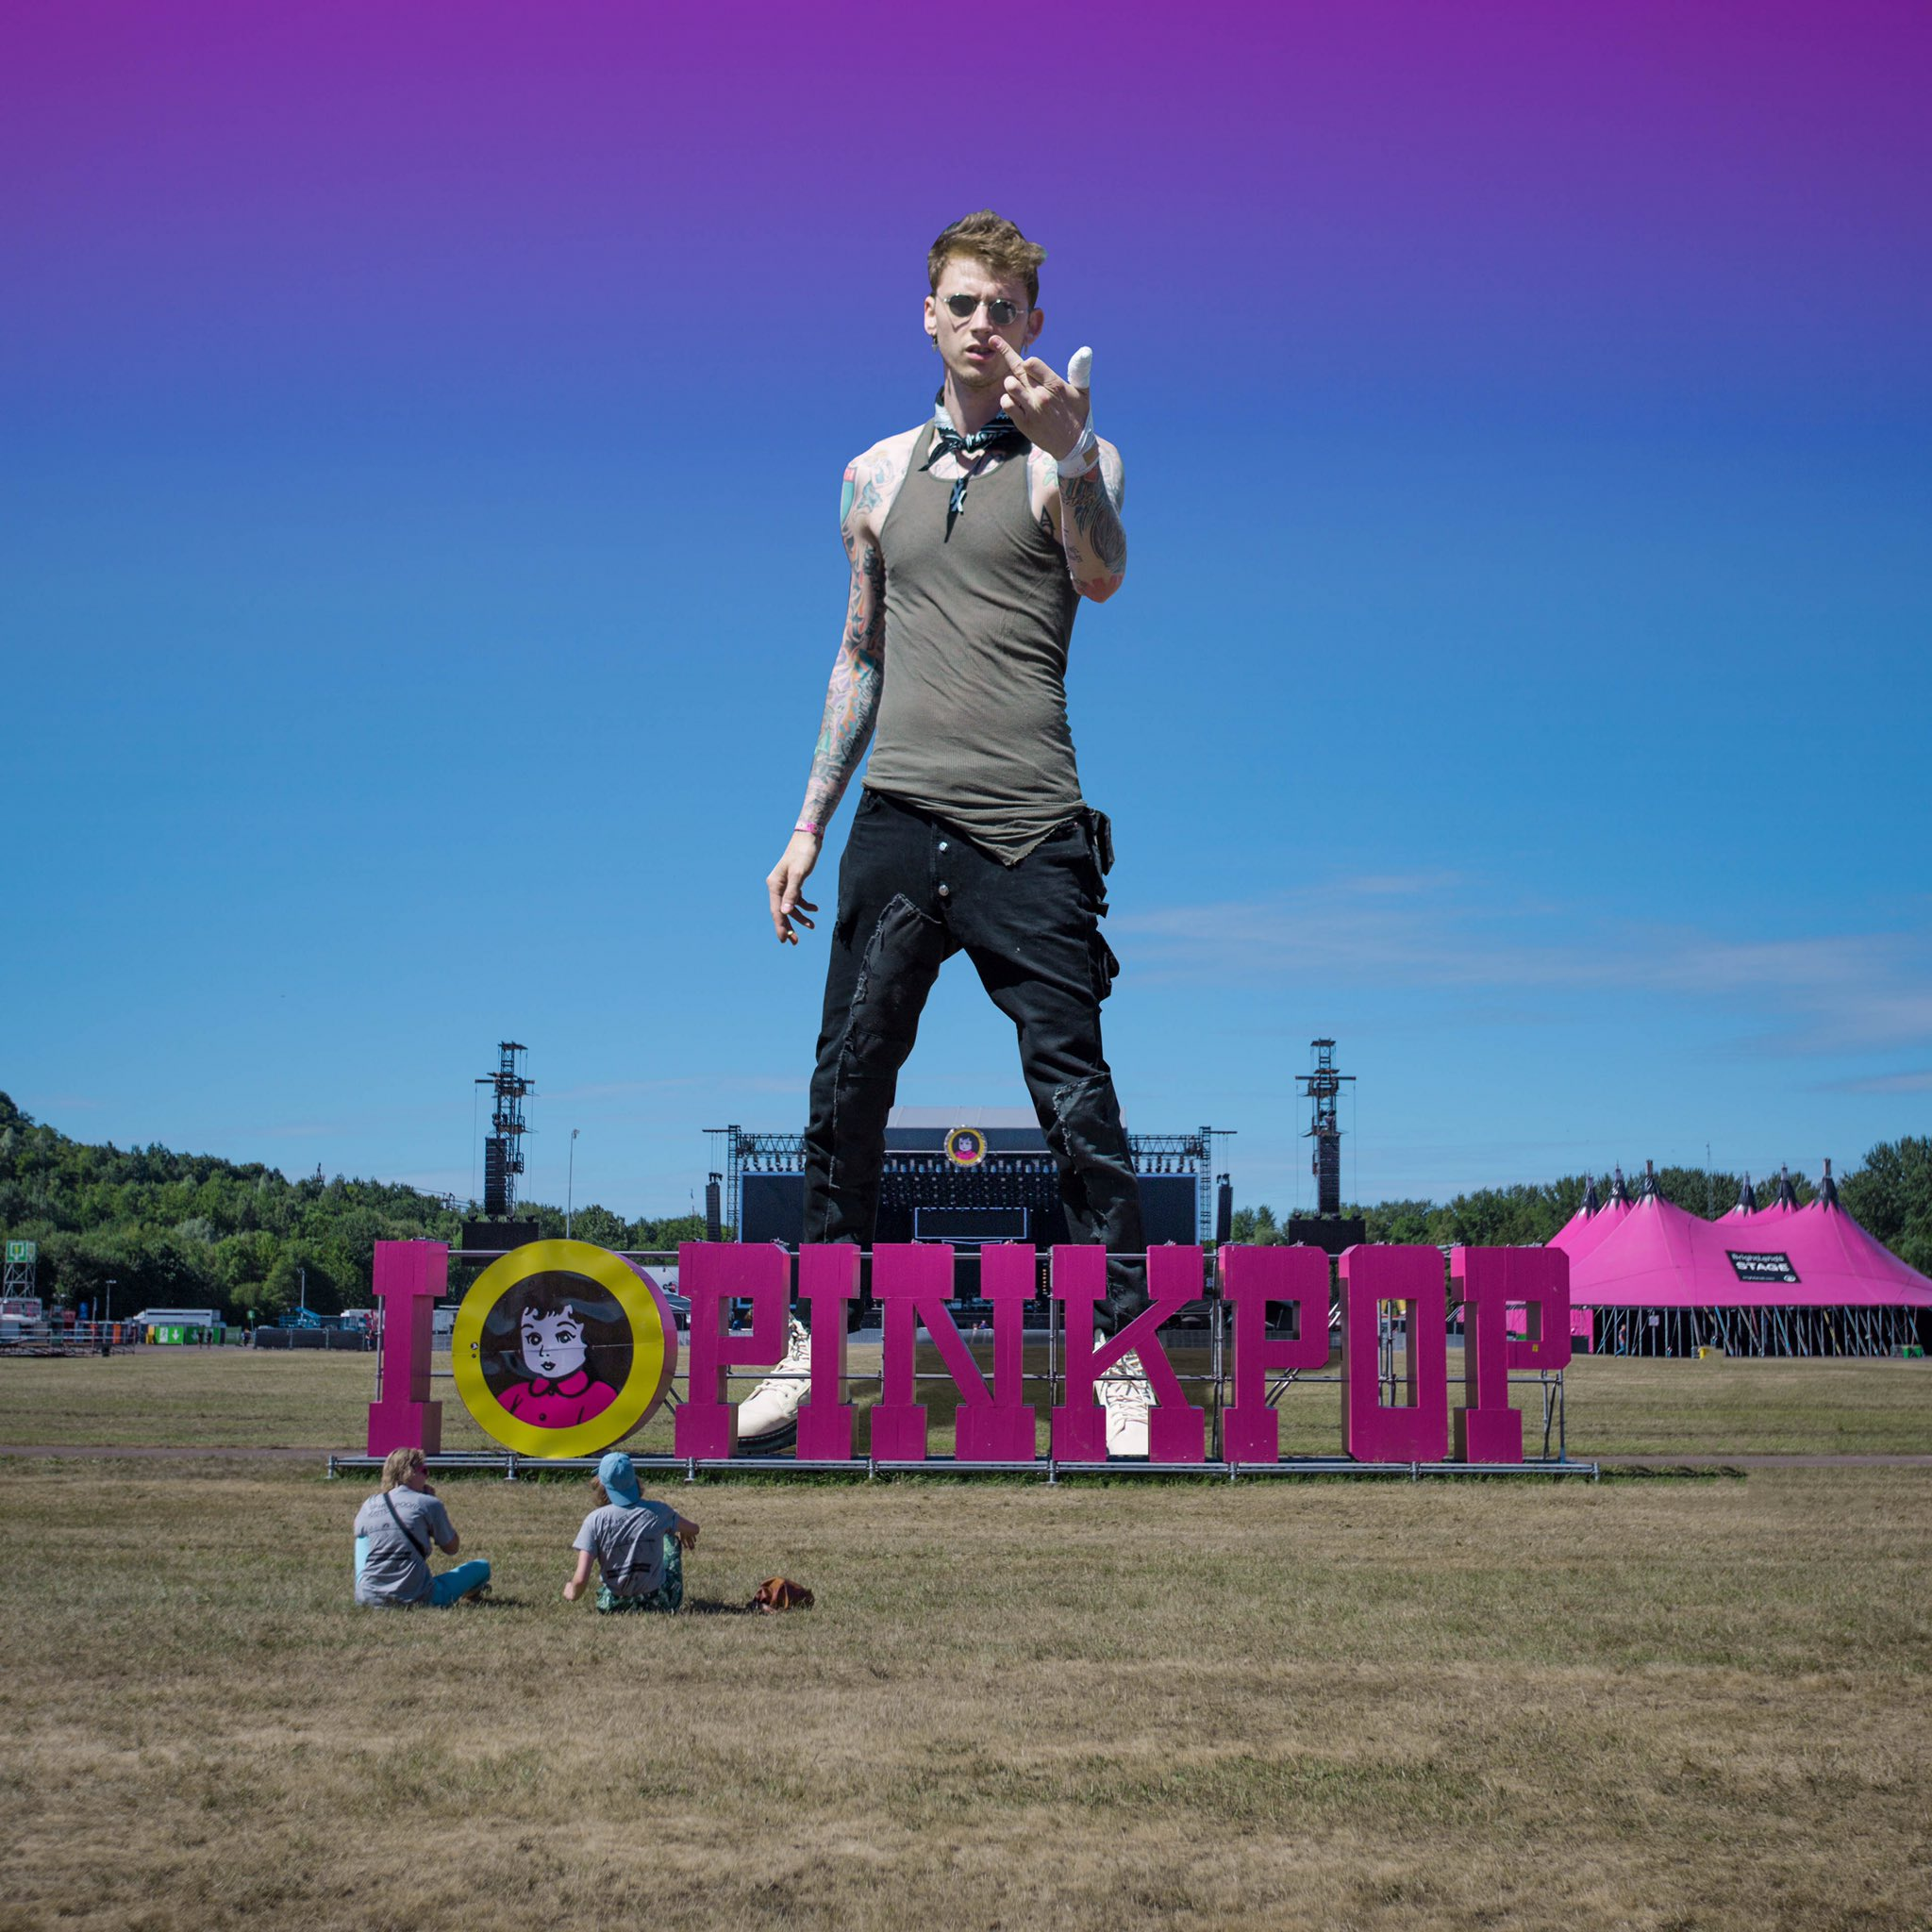 they call me a giant, i step on the stage and i start a riot.  - the gunner  @pinkpopfest https://t.co/WsouZbyXPb